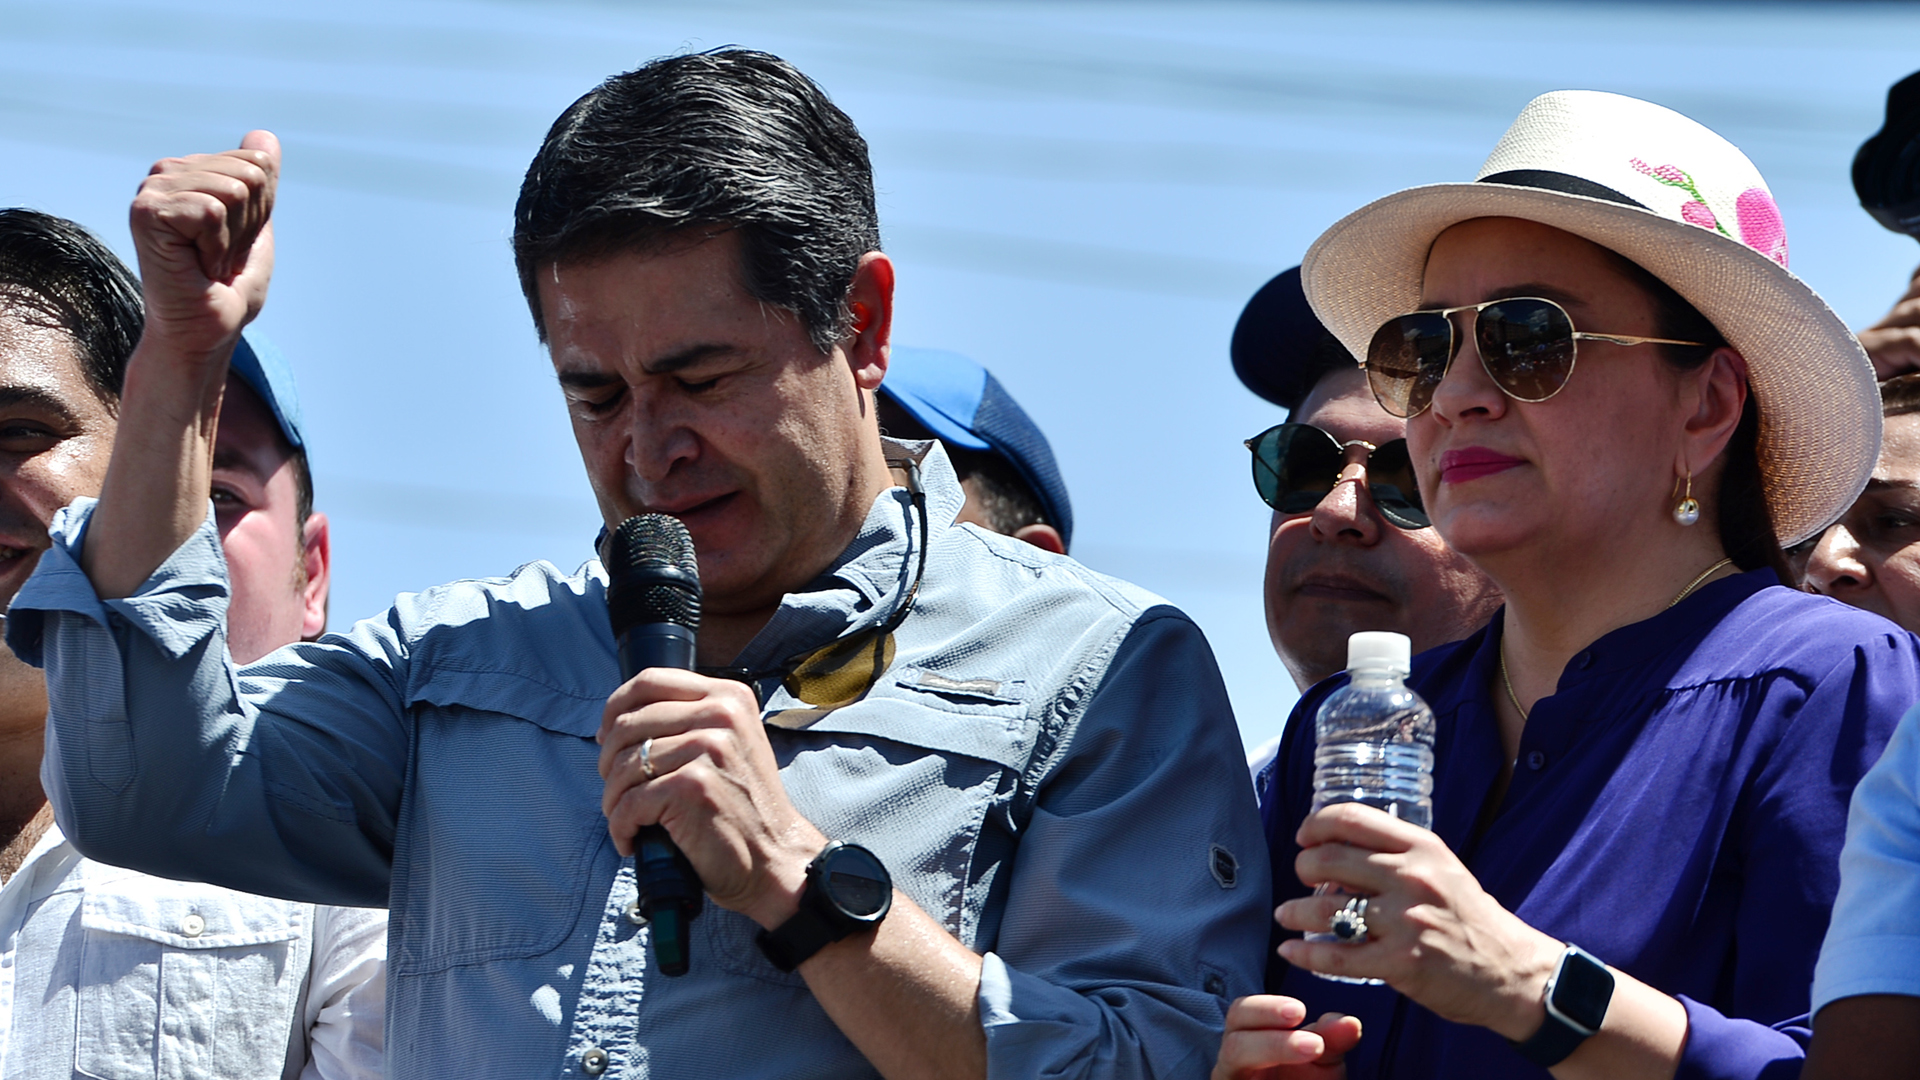 Honduran President Juan Orlando Hernandez speaks to his supporters next to his wife Ana Garcia Hernandez in Tegucigalpa on Oct. 20, 2019. (ORLANDO SIERRA/AFP via Getty Images)